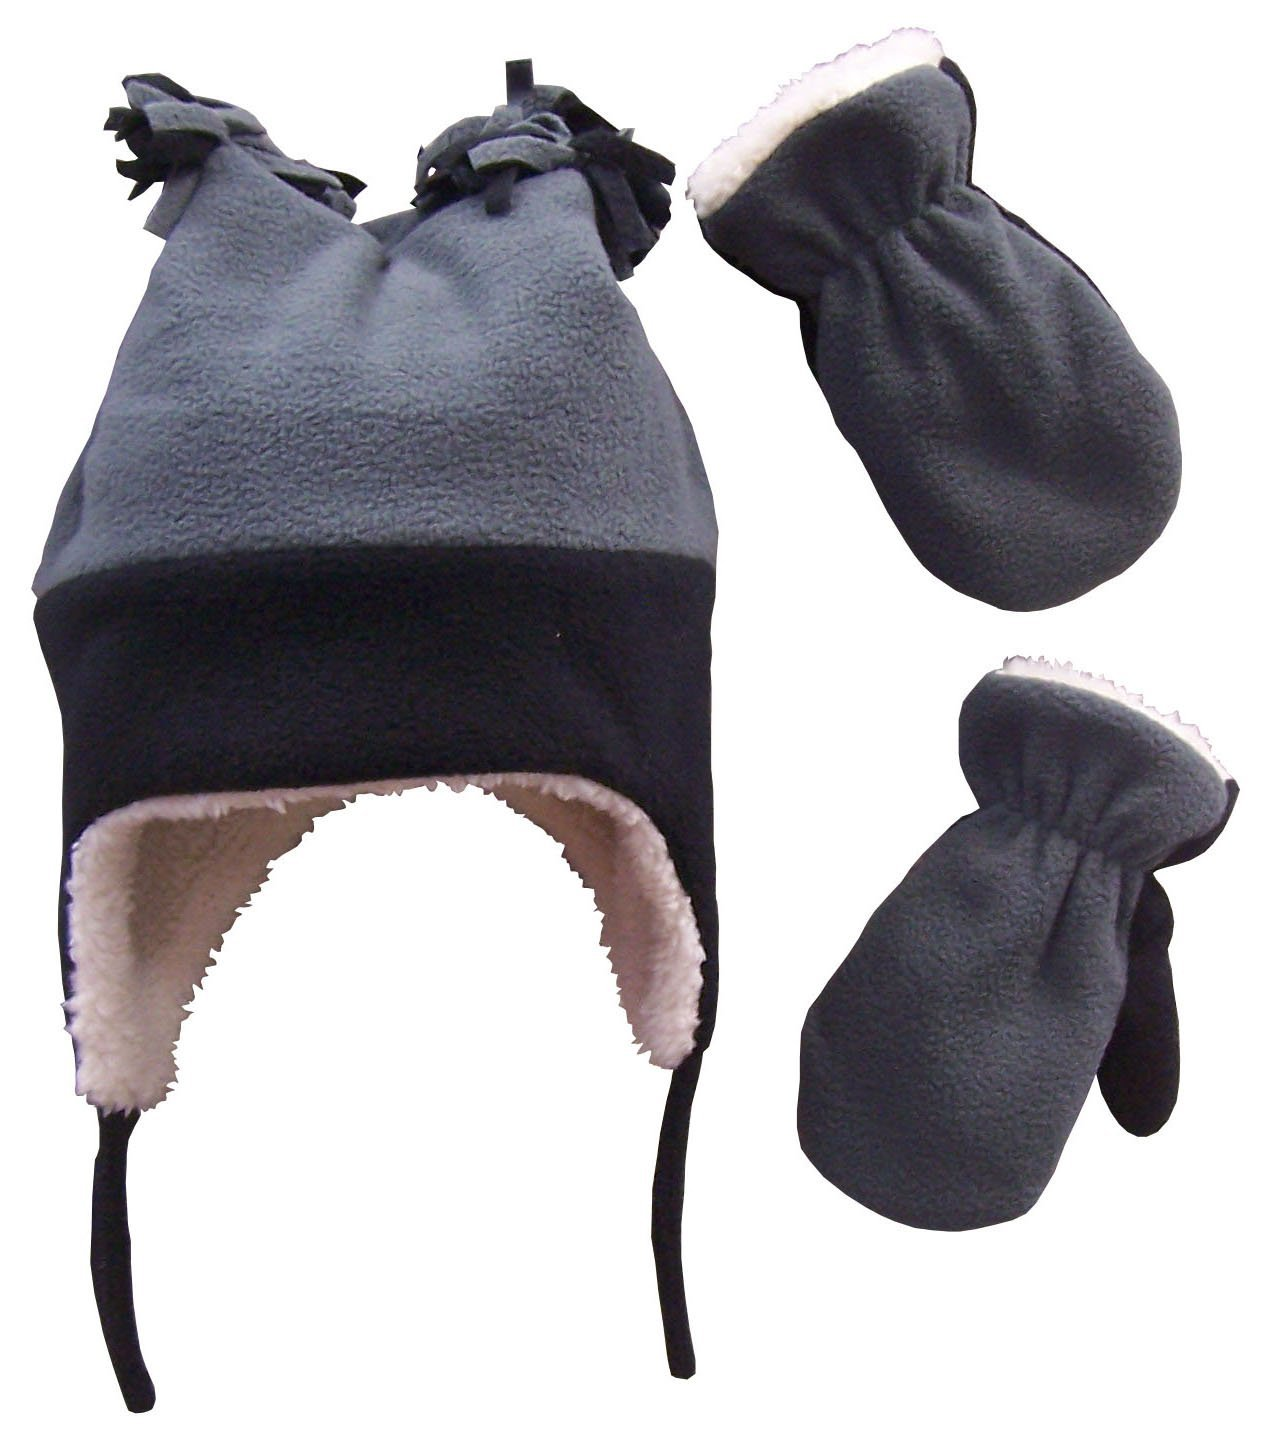 N'Ice Caps Boys Sherpa Lined Micro Fleece Four Corner Ski Hat and Mitten Set (4-7 Years, Black/Charcoal Grey)